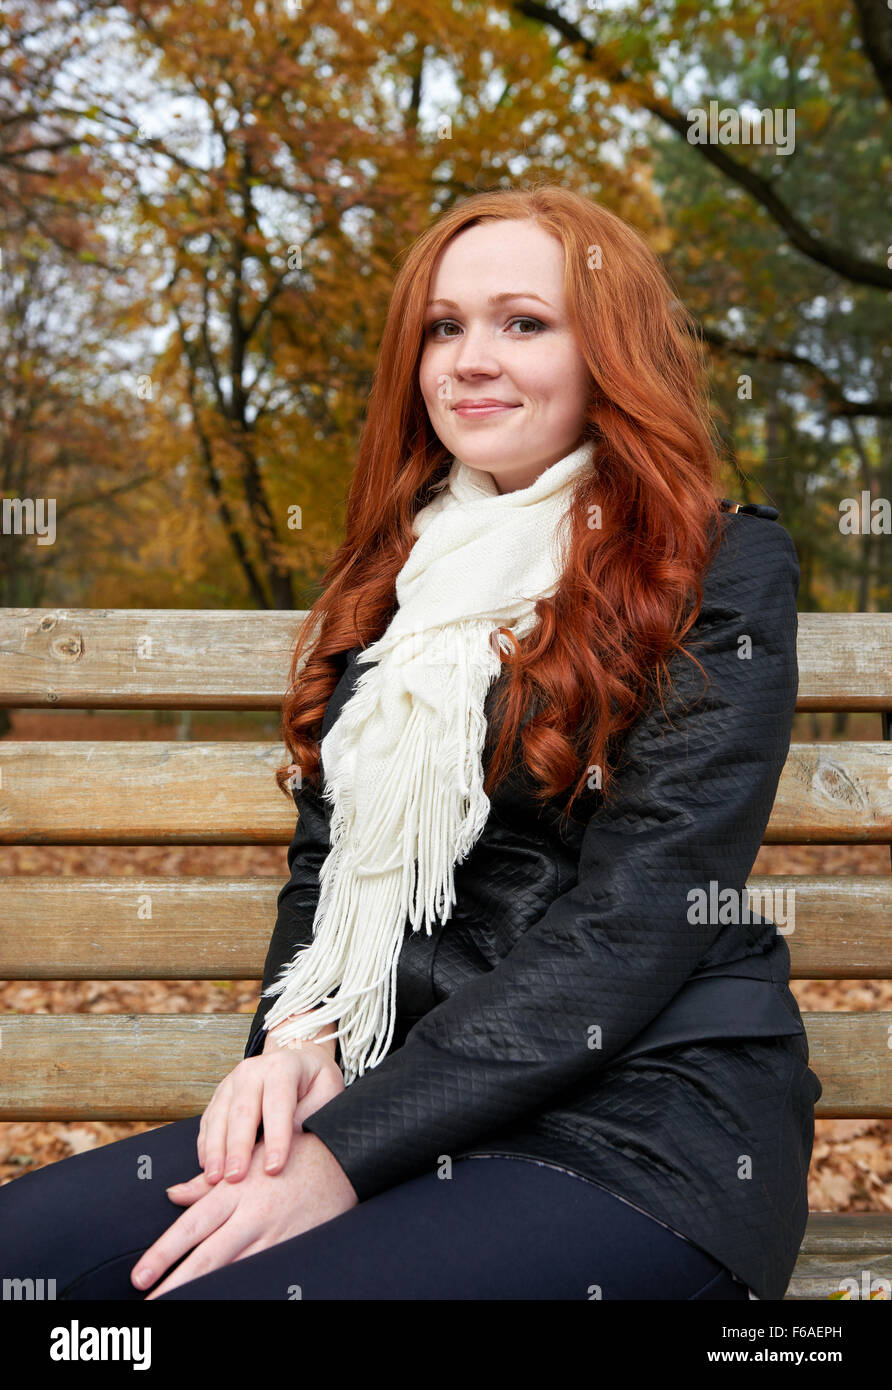 redhead girl portrait in city park, fall season - Stock Image